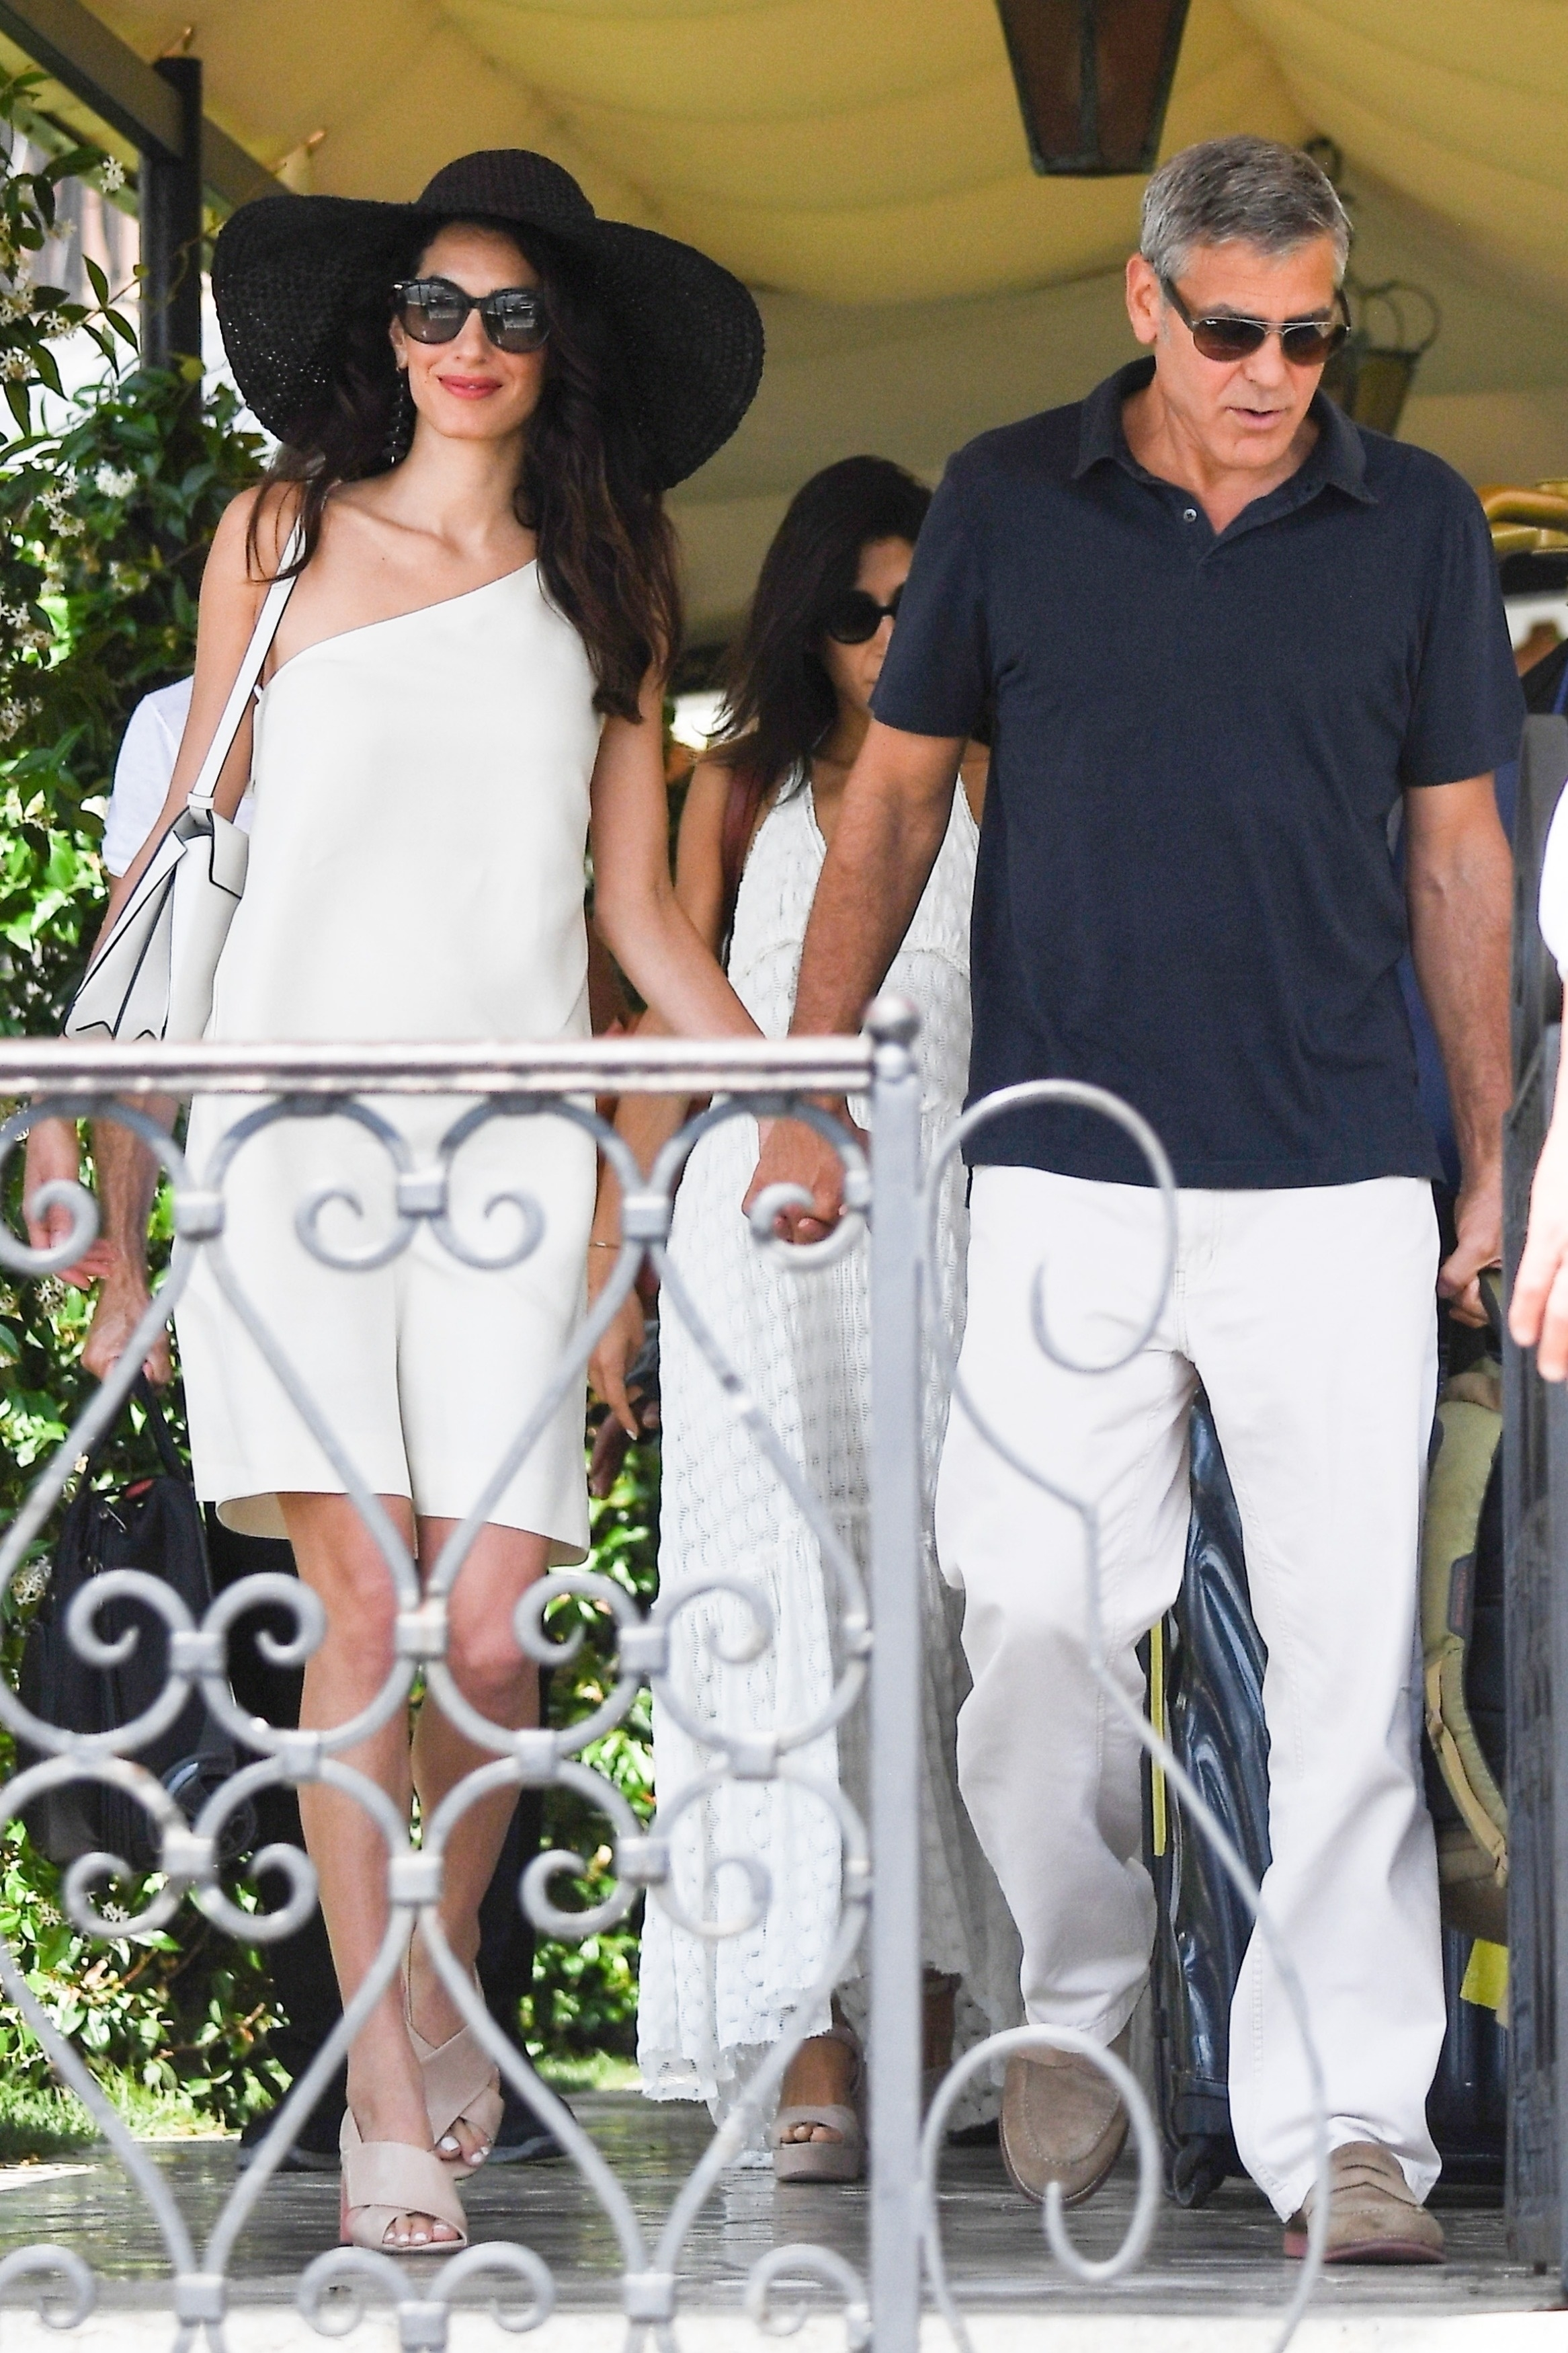 George and Amal Clooney were seen walking hand in hand as they left their hotel in Venice, Italy on June 28, 2019.